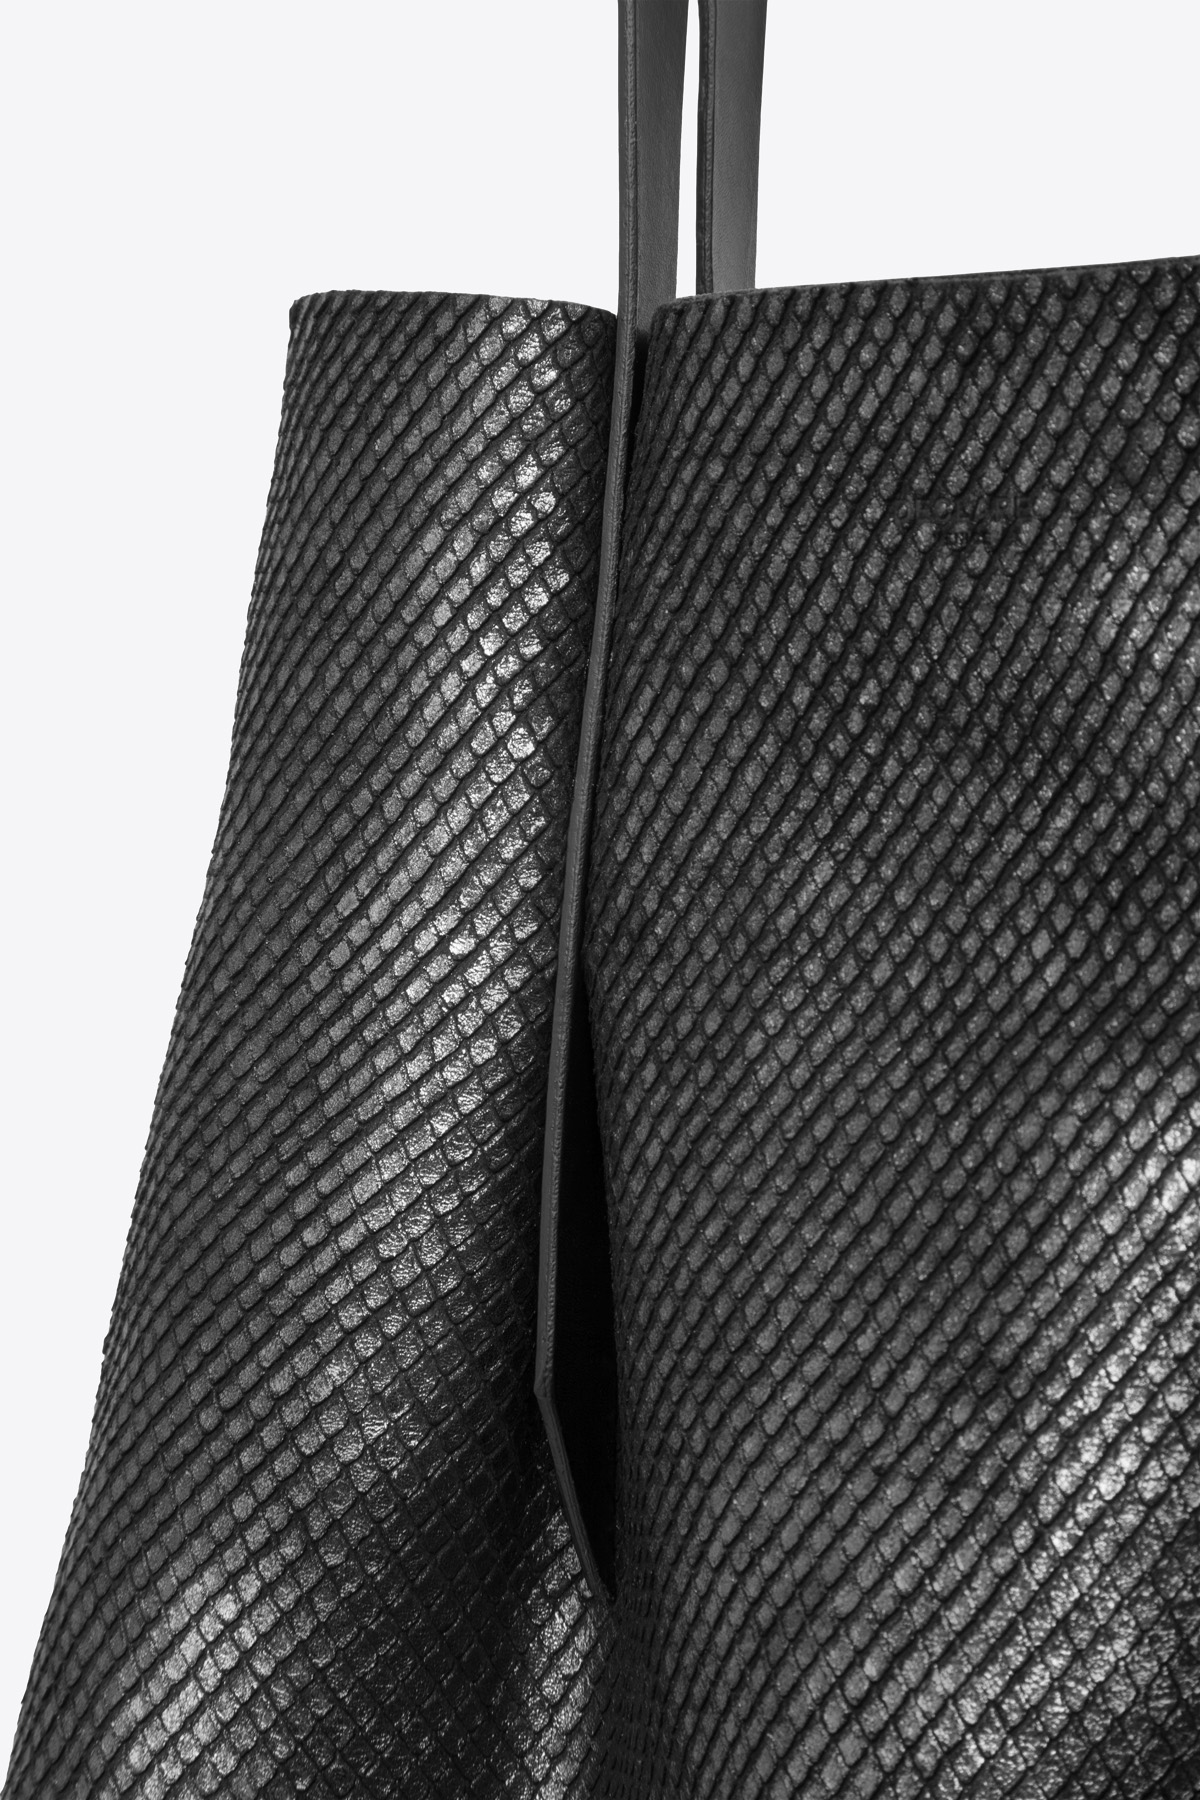 dclr006-shoppingbag-a23-backsnakeblack-detail